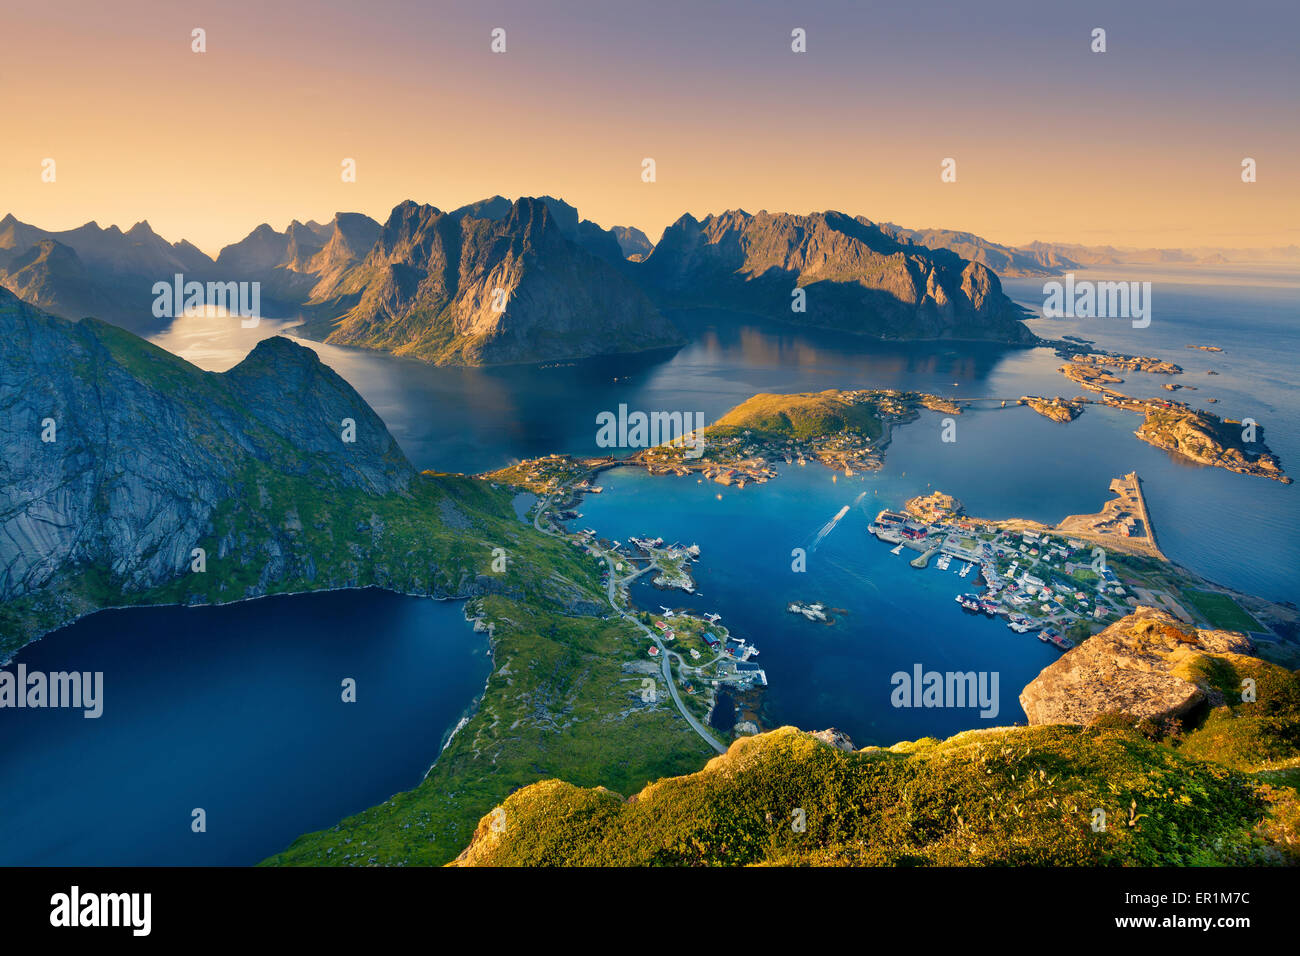 Lofoten Islands. View from Reinebringen at Lofoten Islands, located in Norway, during summer sunset. - Stock Image